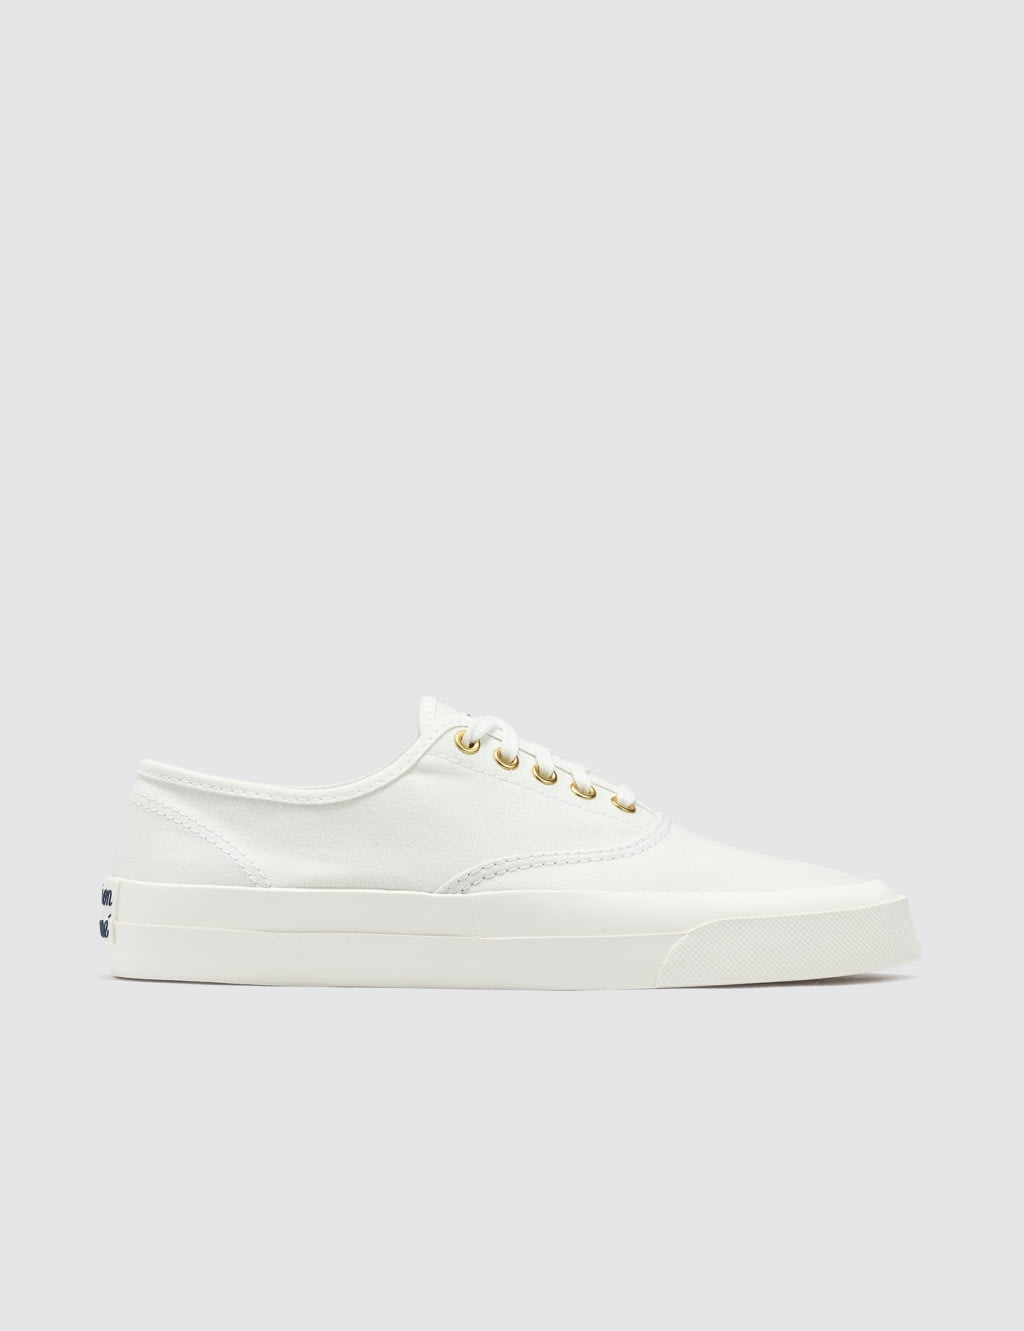 MAISON KITSUNE Canvas Sneakers